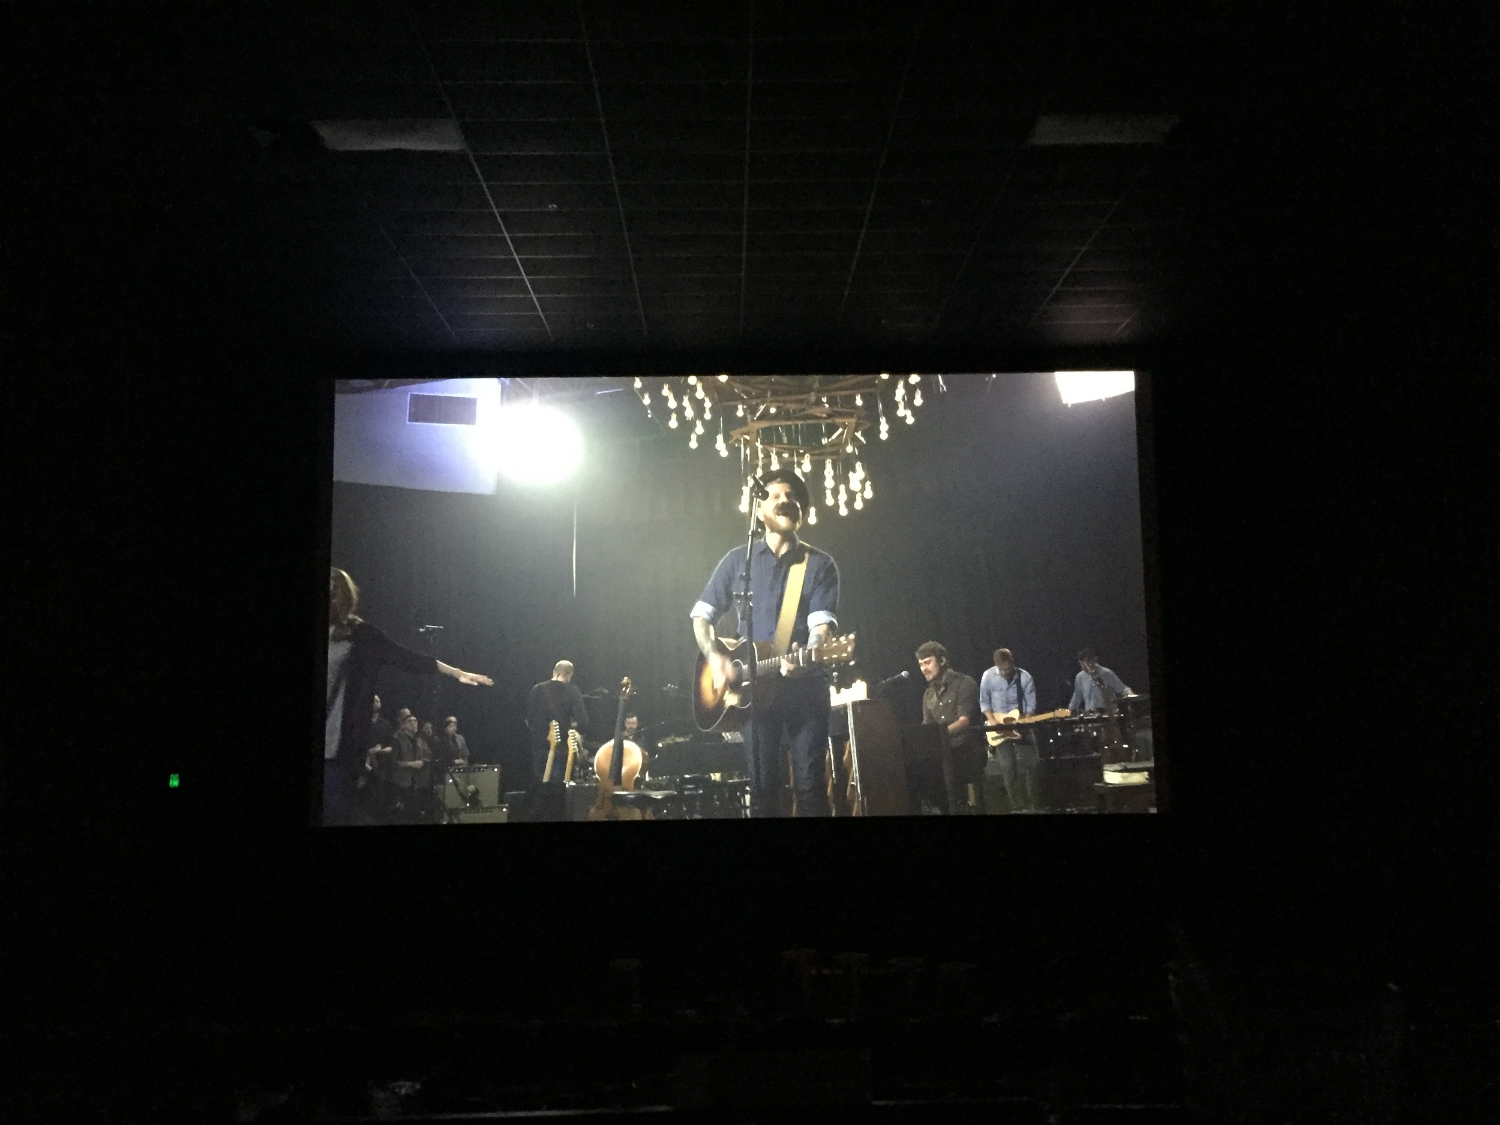 One of the music videos playing during the Alamo Drafthouse Album Release. Feel free to check out all of the live recording videos  here !